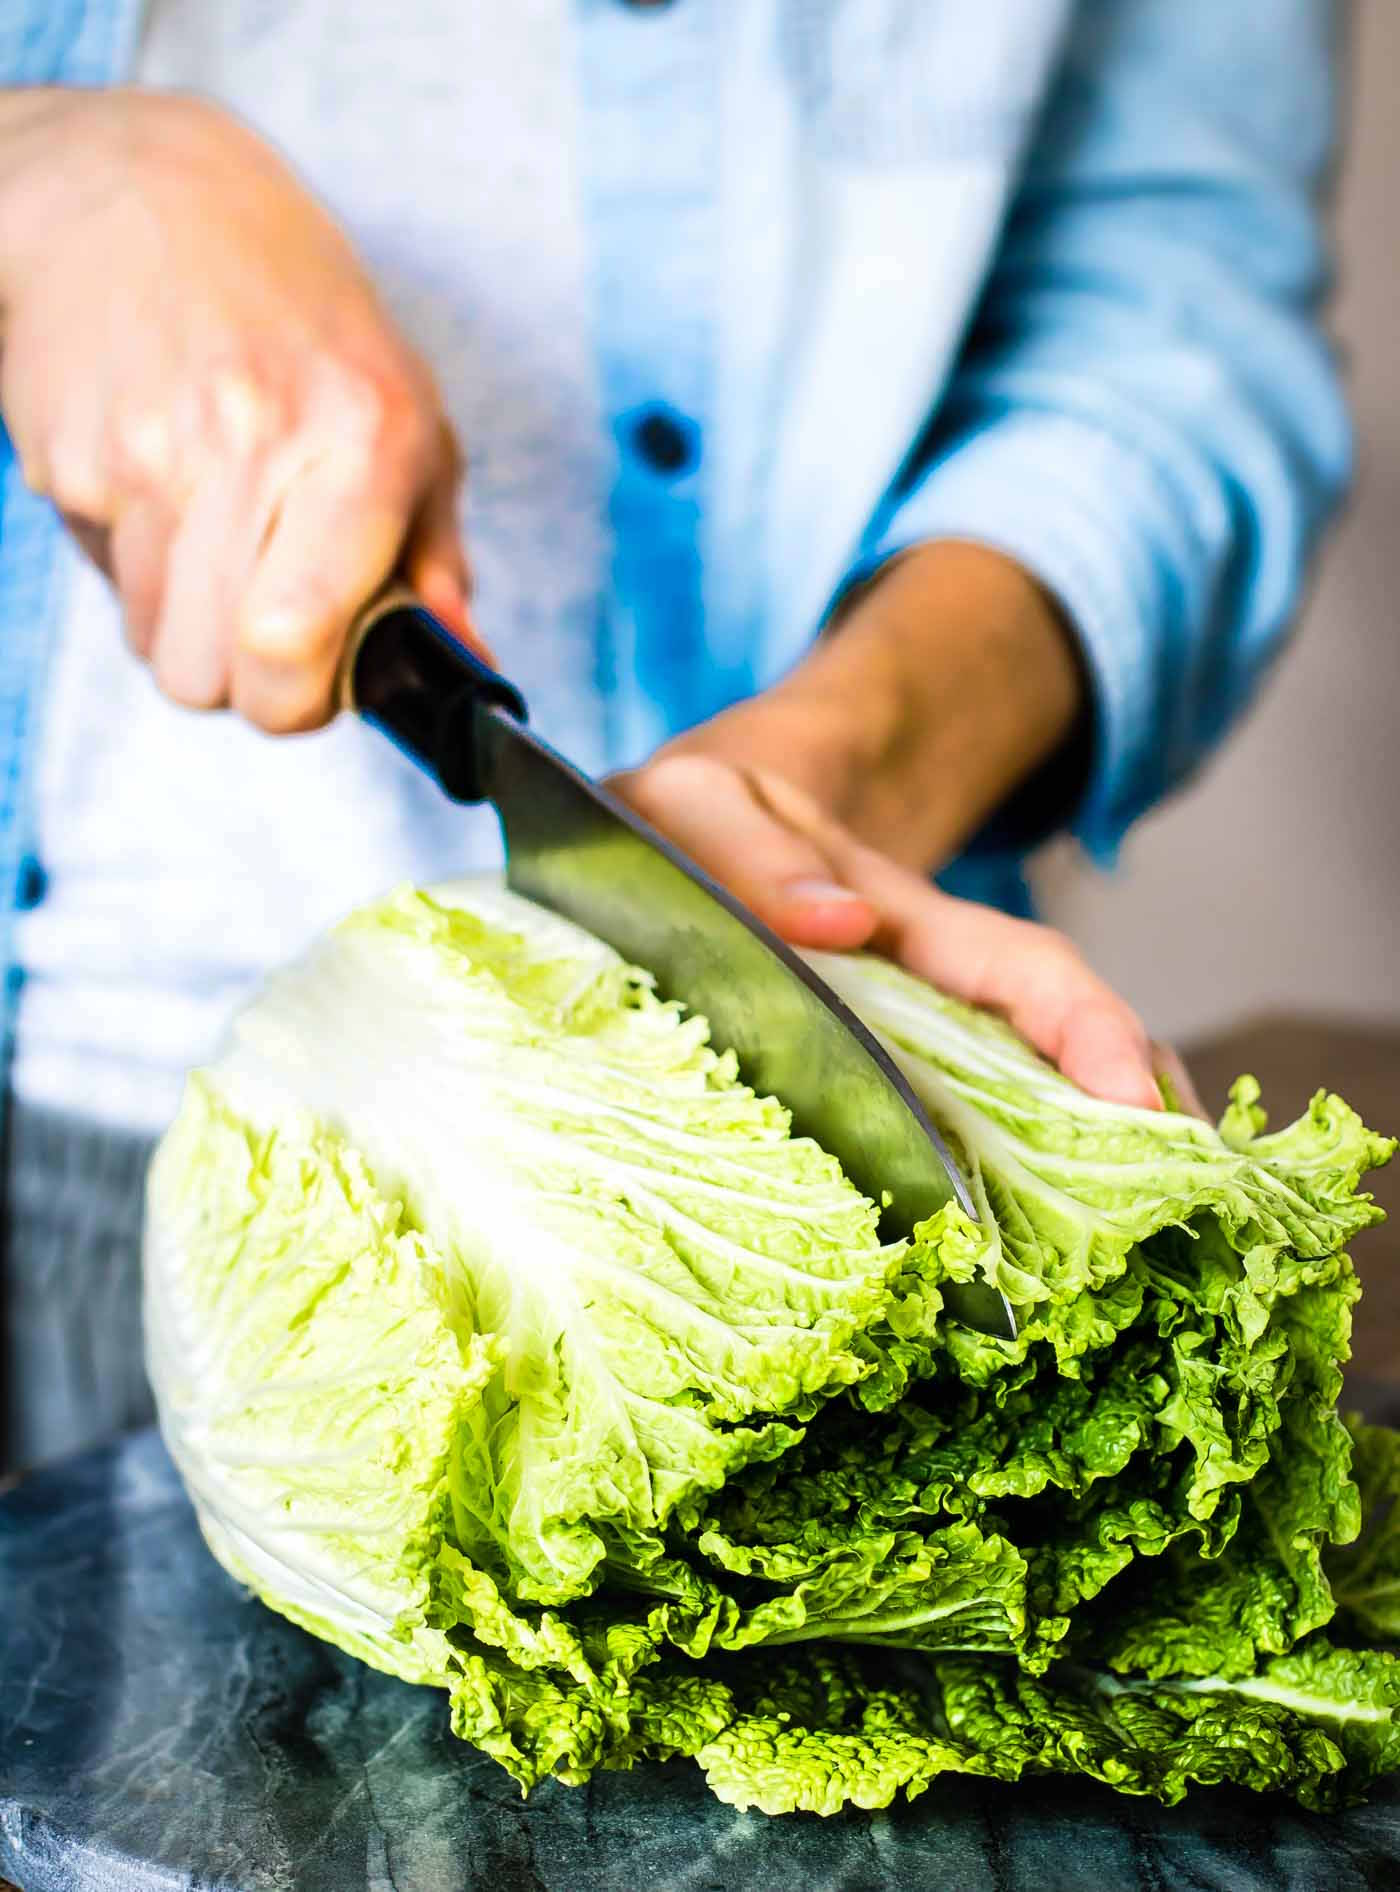 cutting into a head of Napa cabbage with a chef's knife